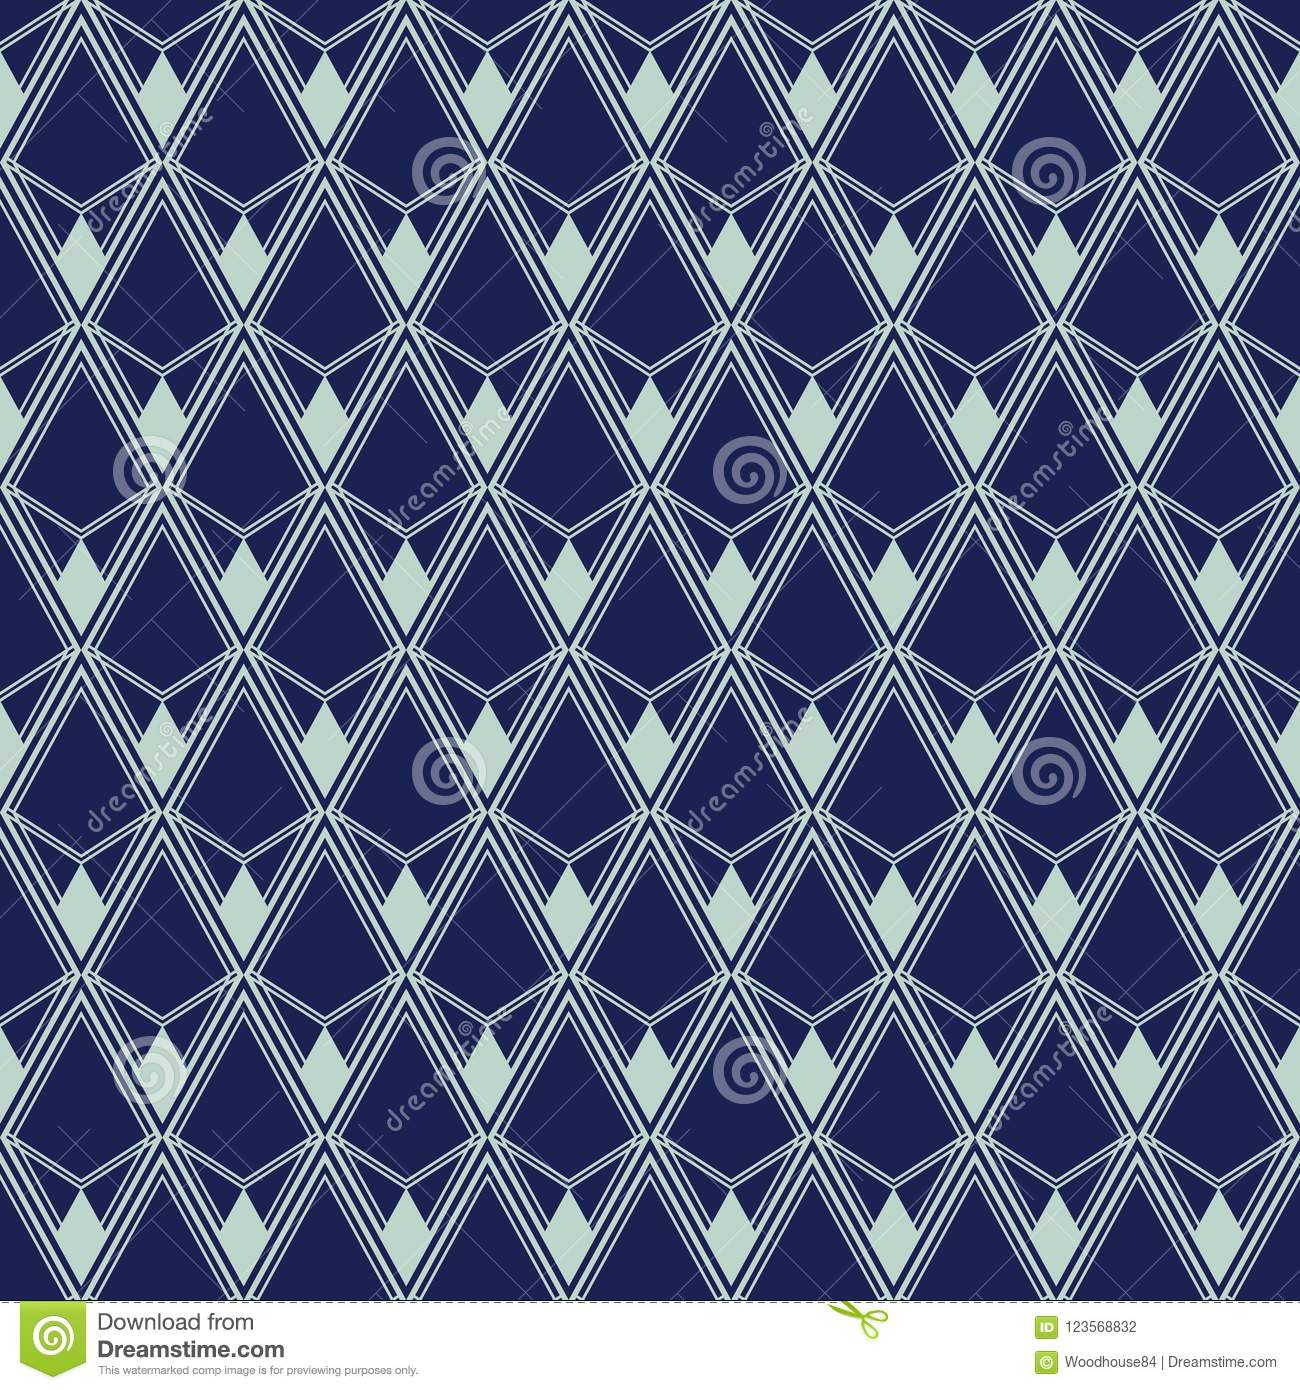 Decoration Art Deco Art Deco Seamless Pattern Geometrical Background For Design